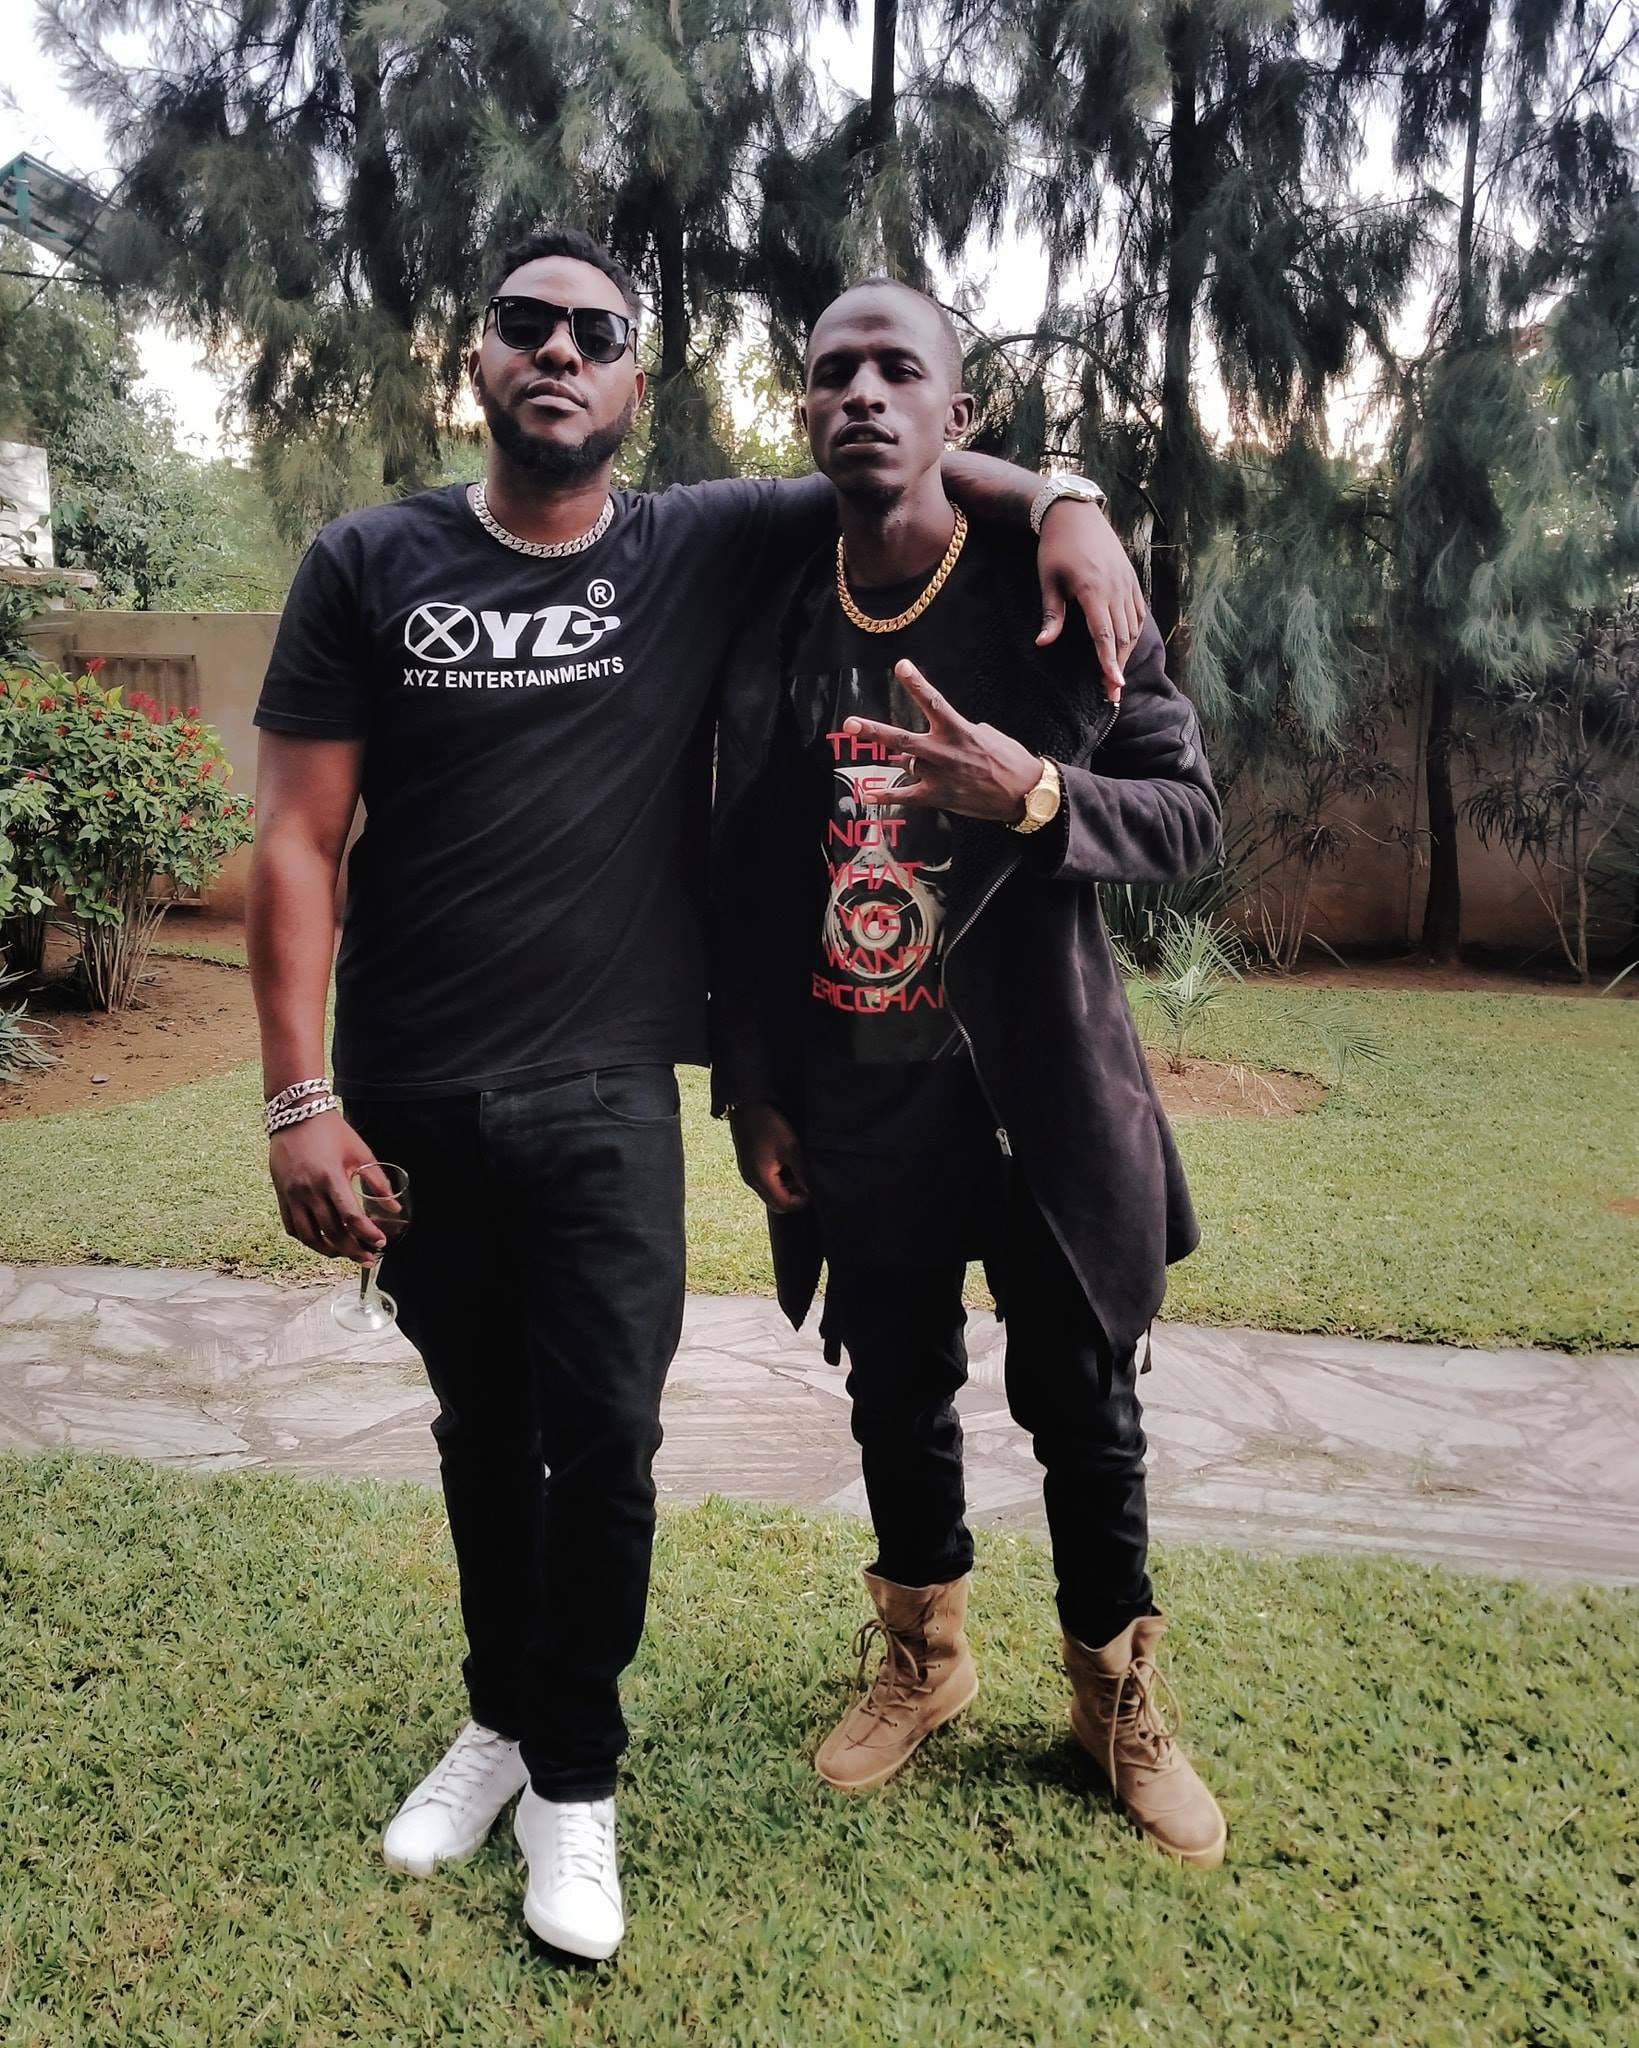 Fans React To Macky's Photo With Closest Rival Slap Dee